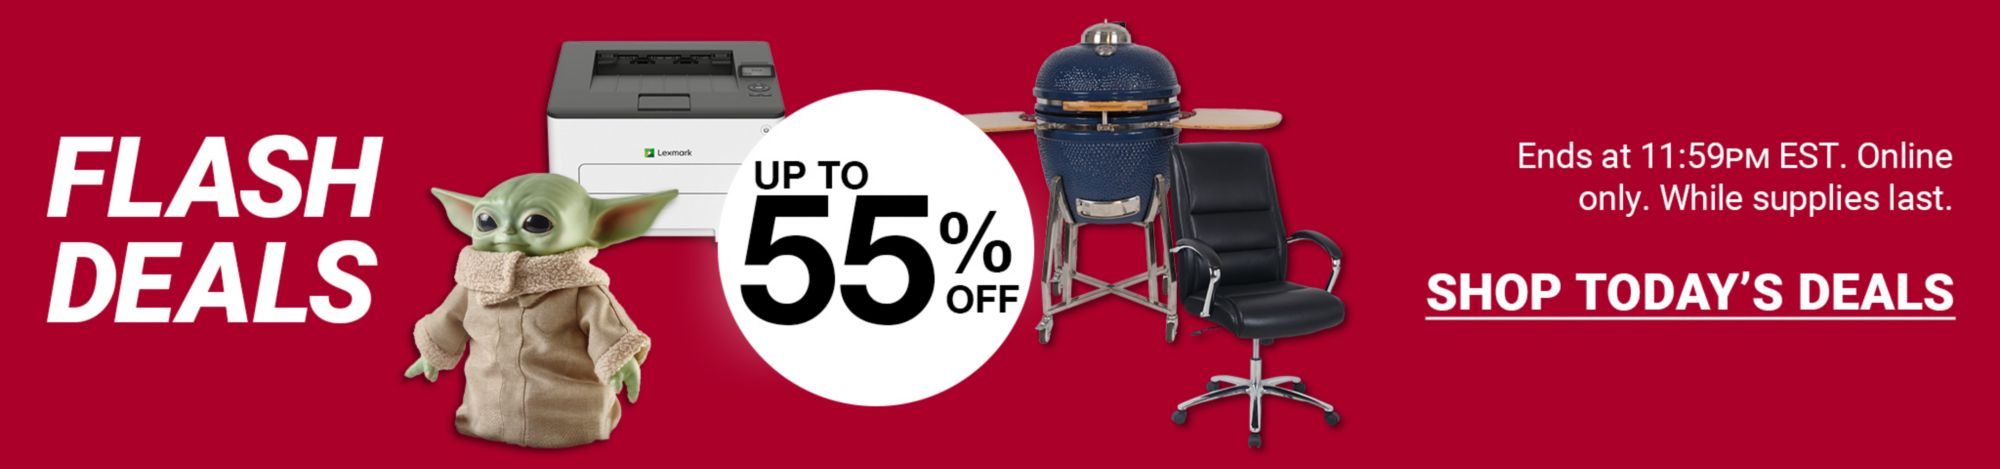 Flash Deals. Up to 55 percent off a variety of products. Click here to shop now. Ends at 11:59 PM EST. Online only. While supplies last.